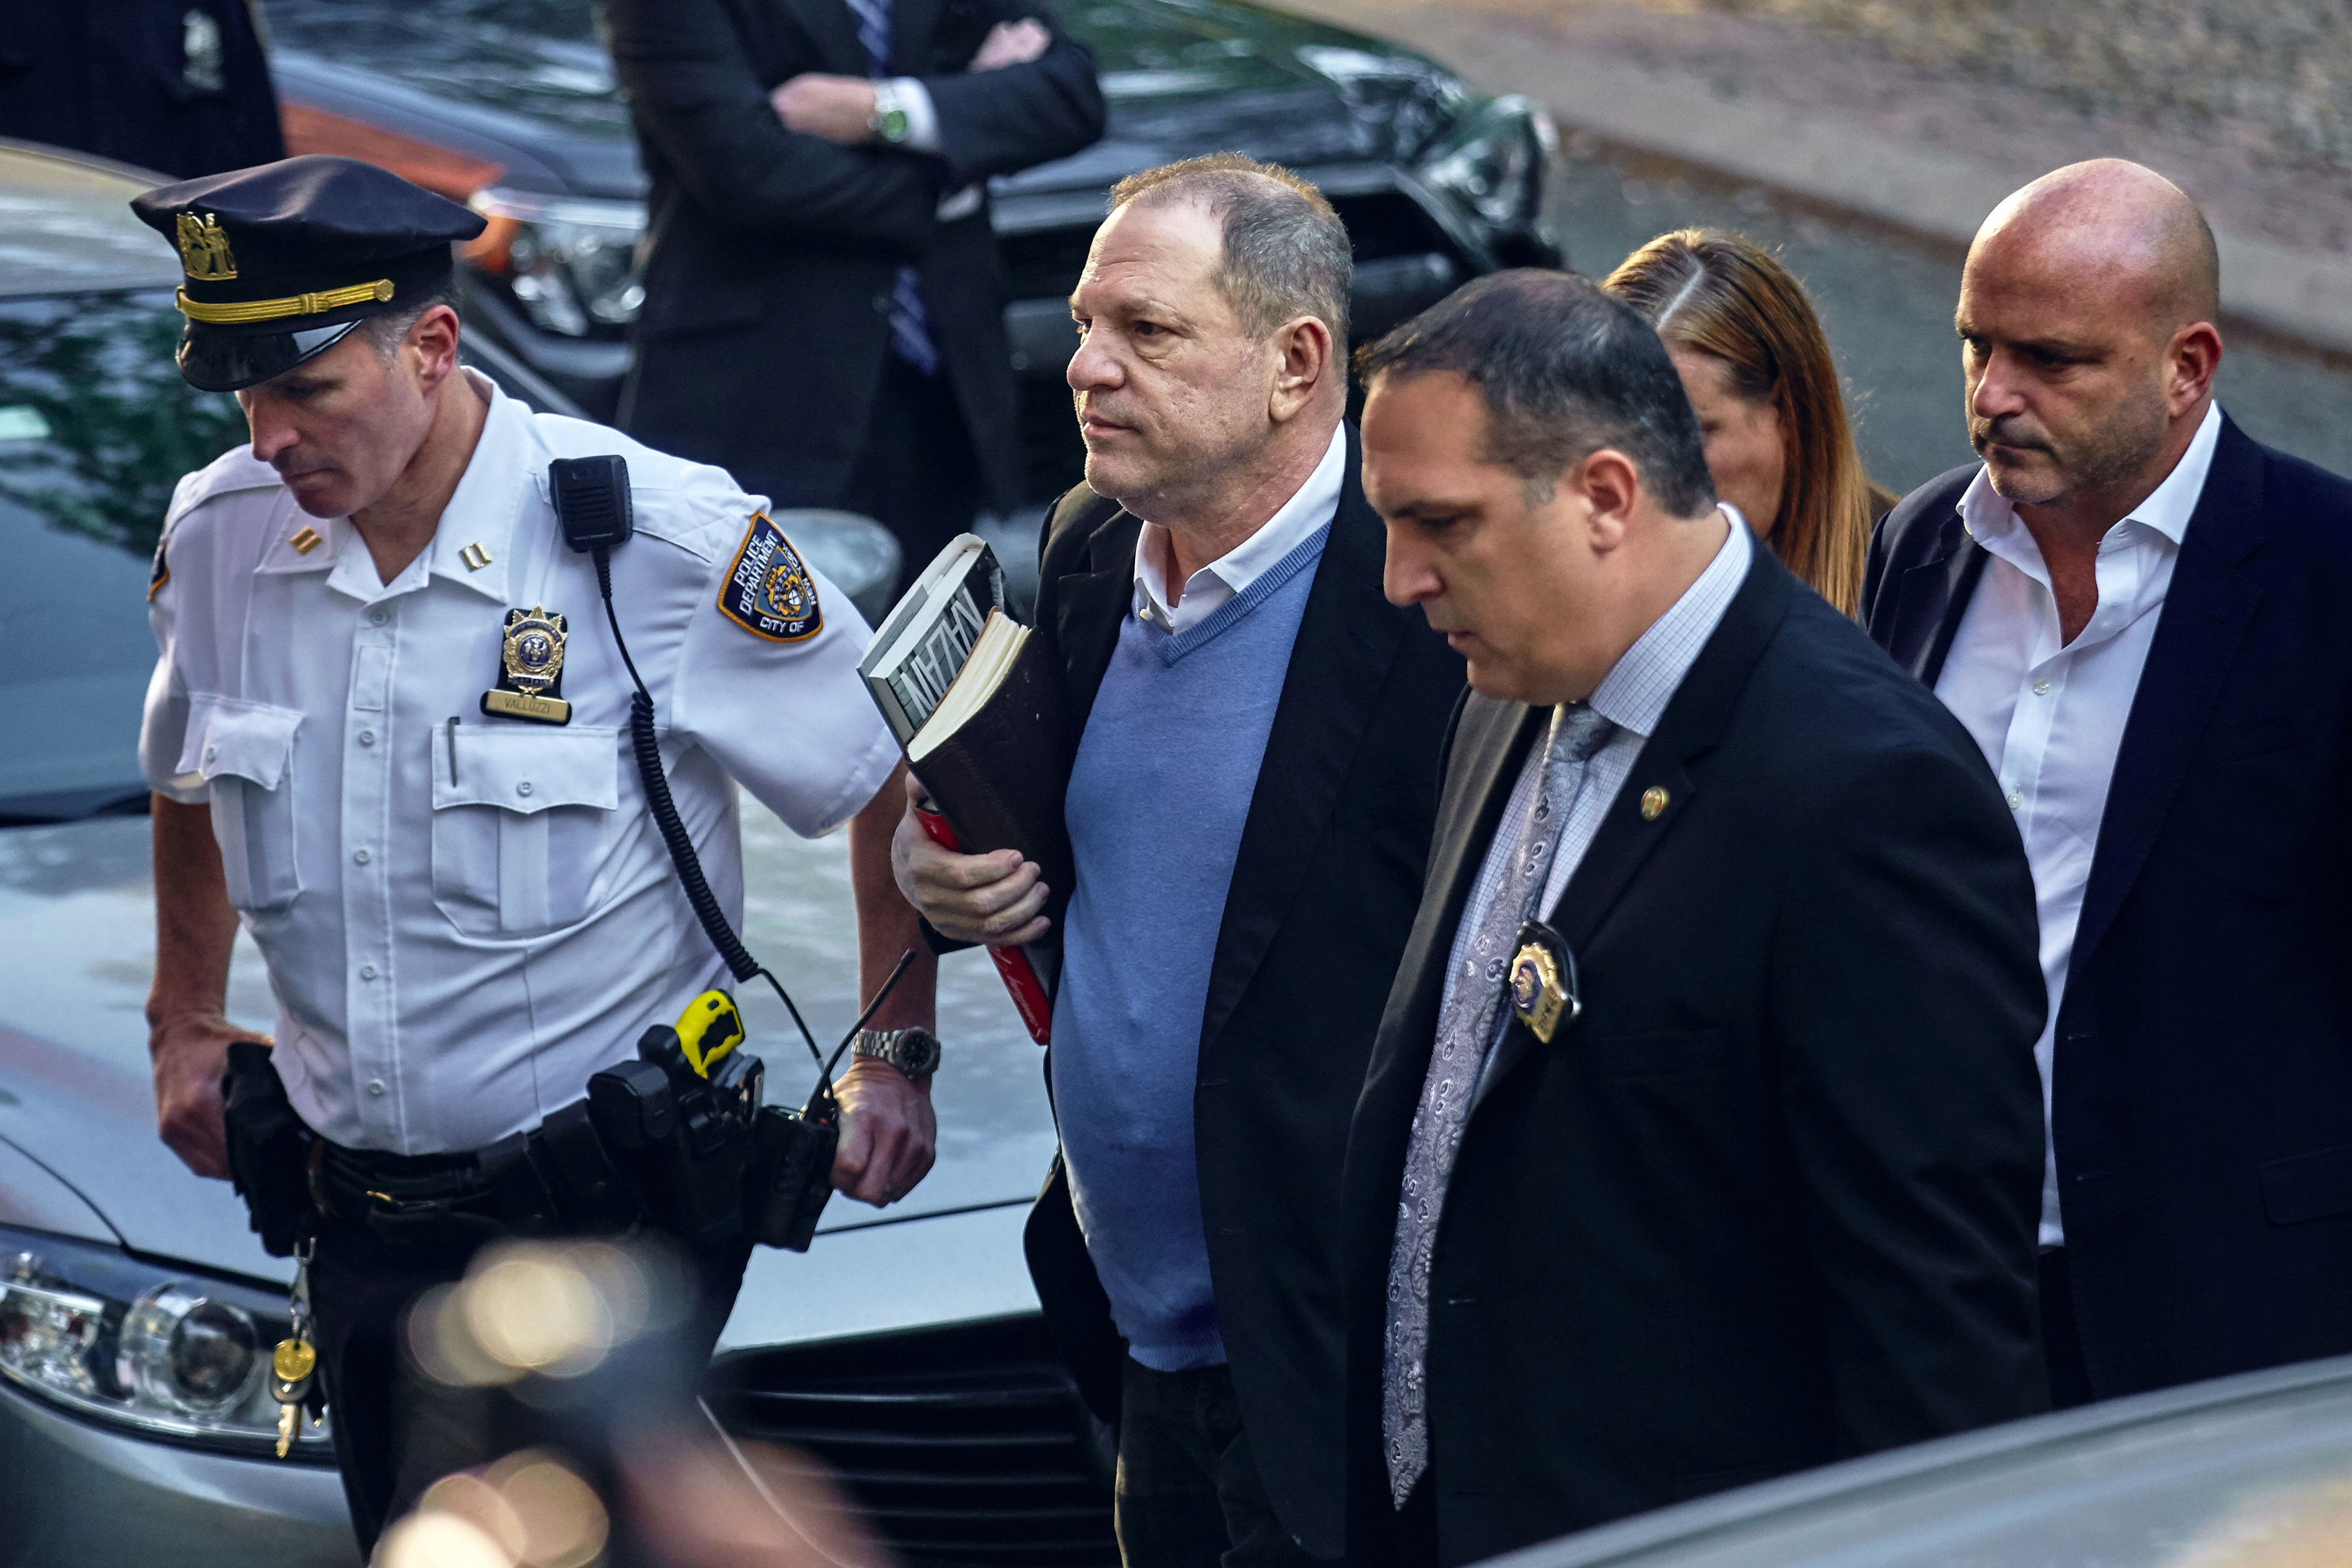 Harvey Weinstein arrives at a New York police precinct (AP Photo/Andres Kudacki)